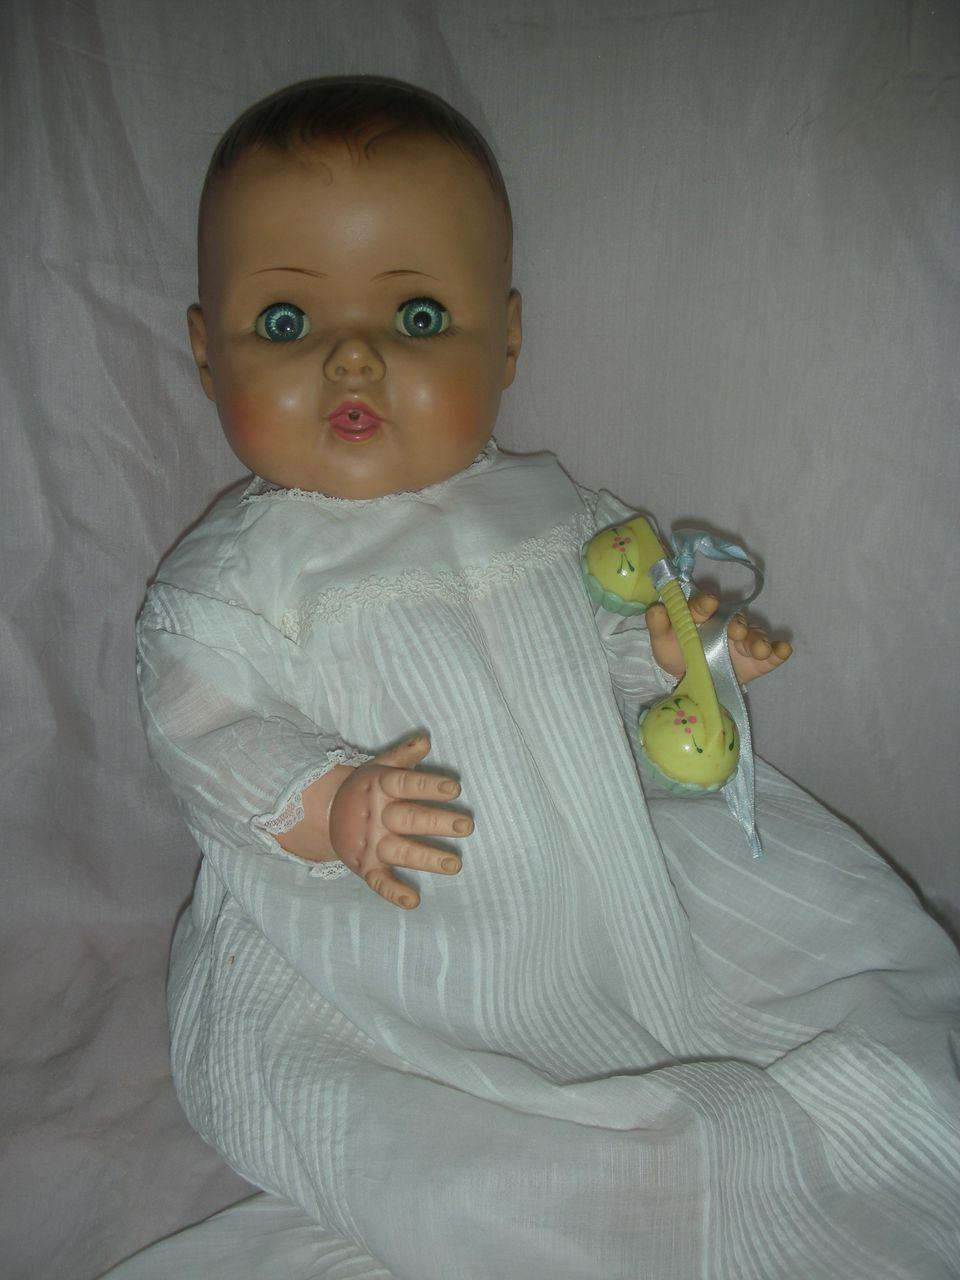 Vintage 1950s American Character Toodles Baby Doll Jointed